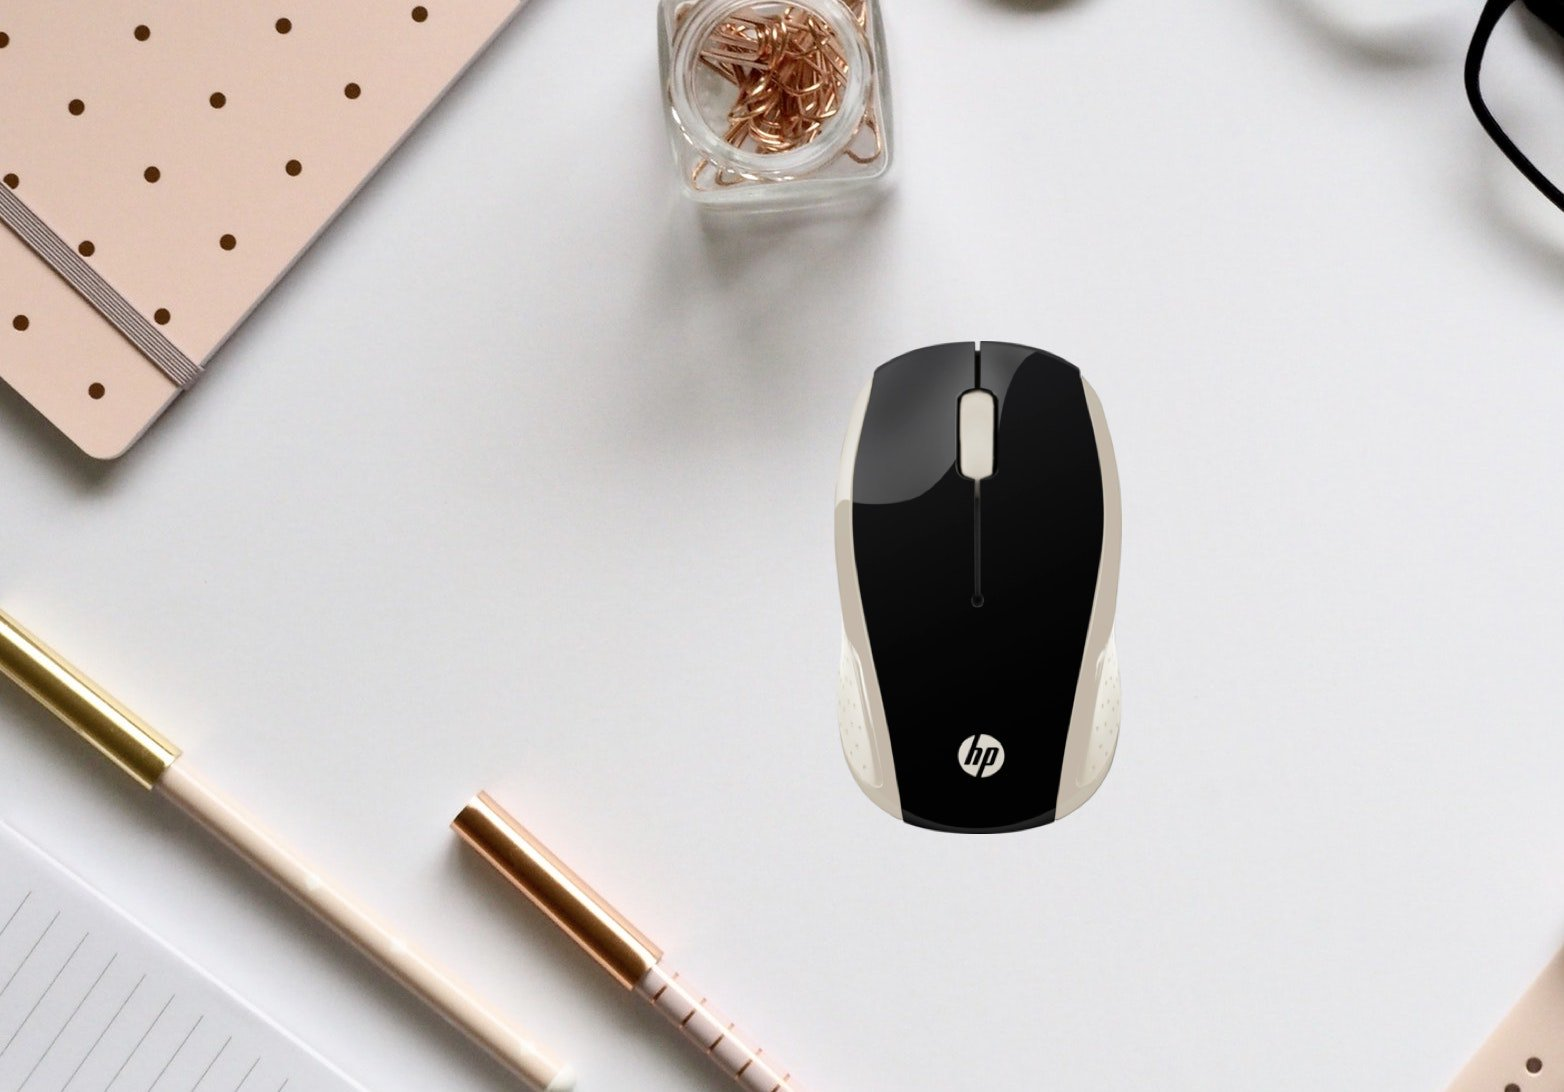 The new HP 200 wireless mouse helps you work your way